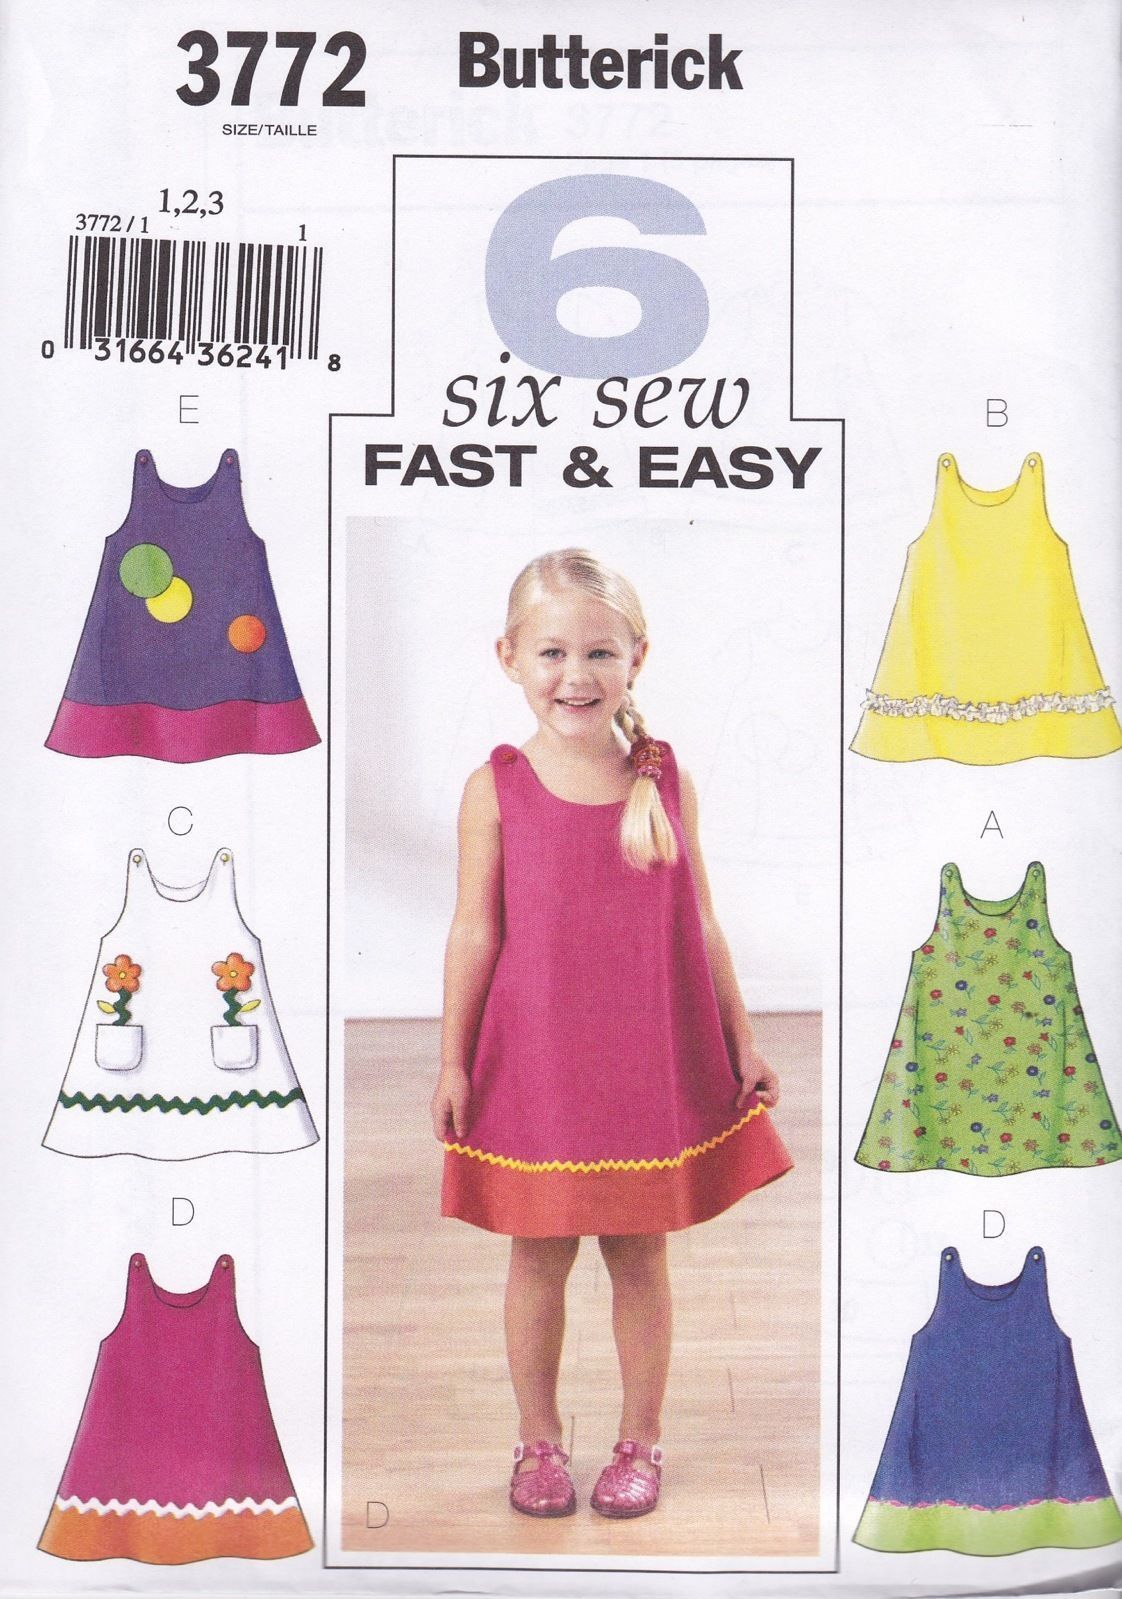 30 Awesome Image of Pattern Sewing Easy   Pattern Sewing Easy